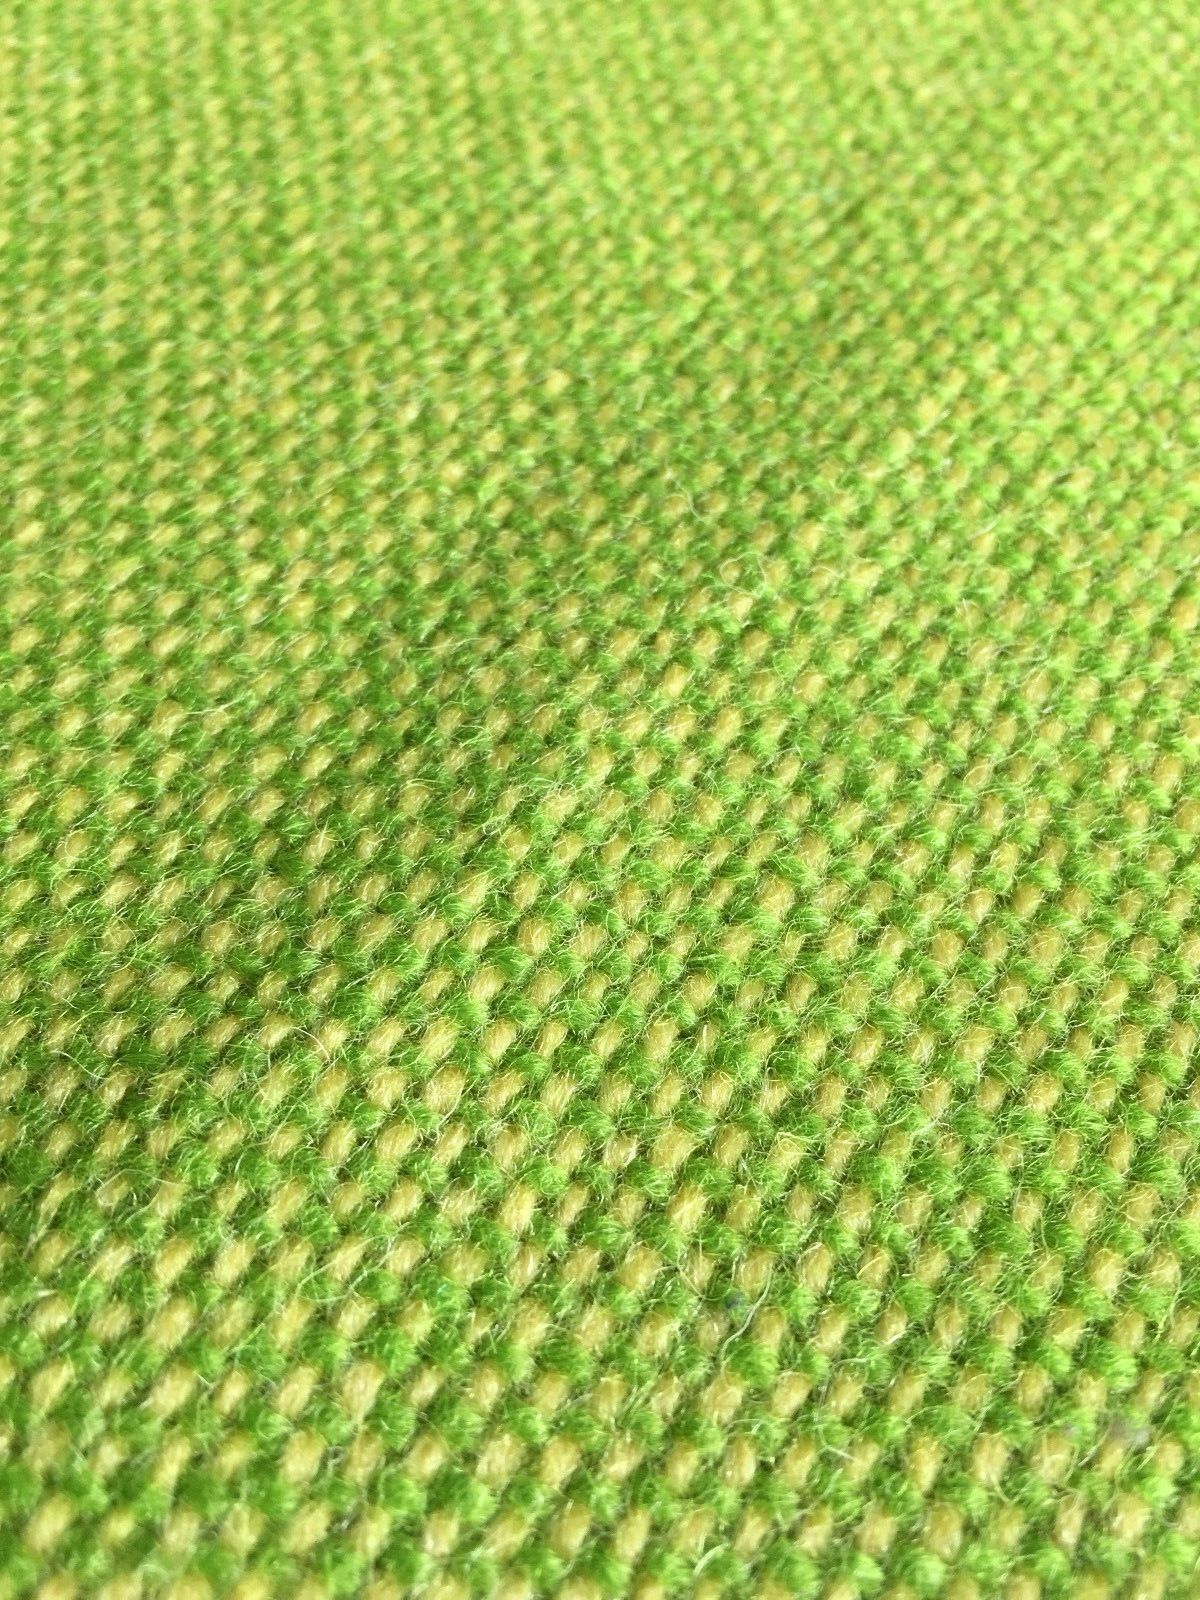 1.875 yds Wool Upholstery Fabric Hallingdal Inspired Spring Green Yellow DK